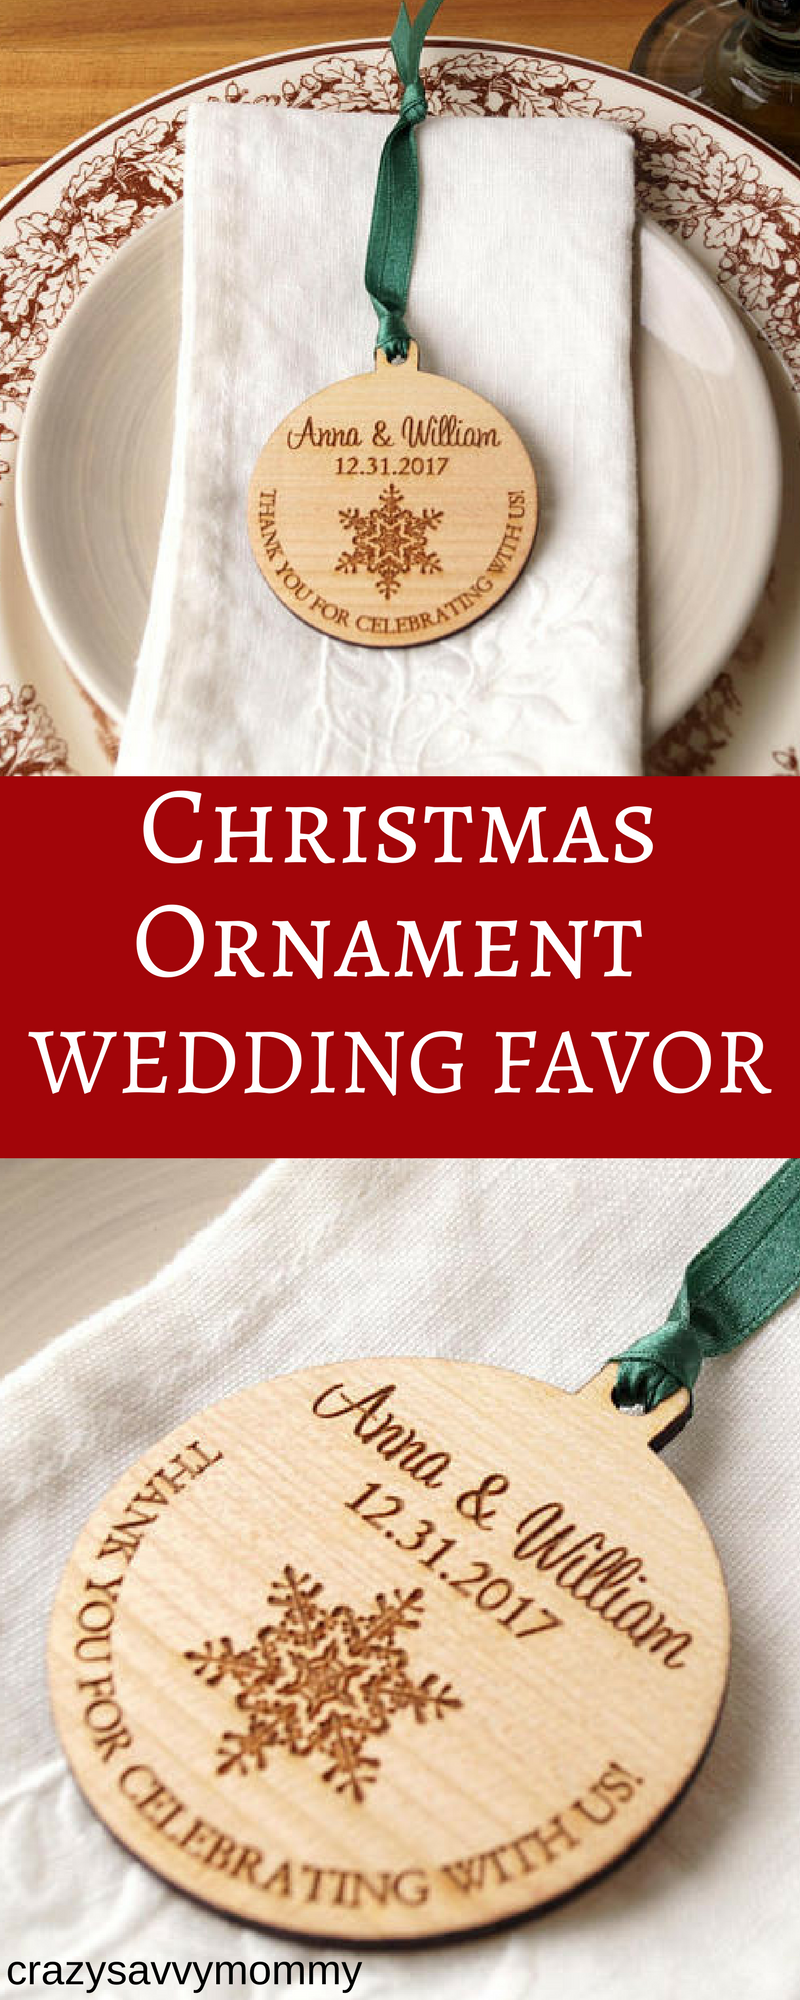 PERSONALIZED WEDDING FAVOR Christmas Ornament! These wooden ...